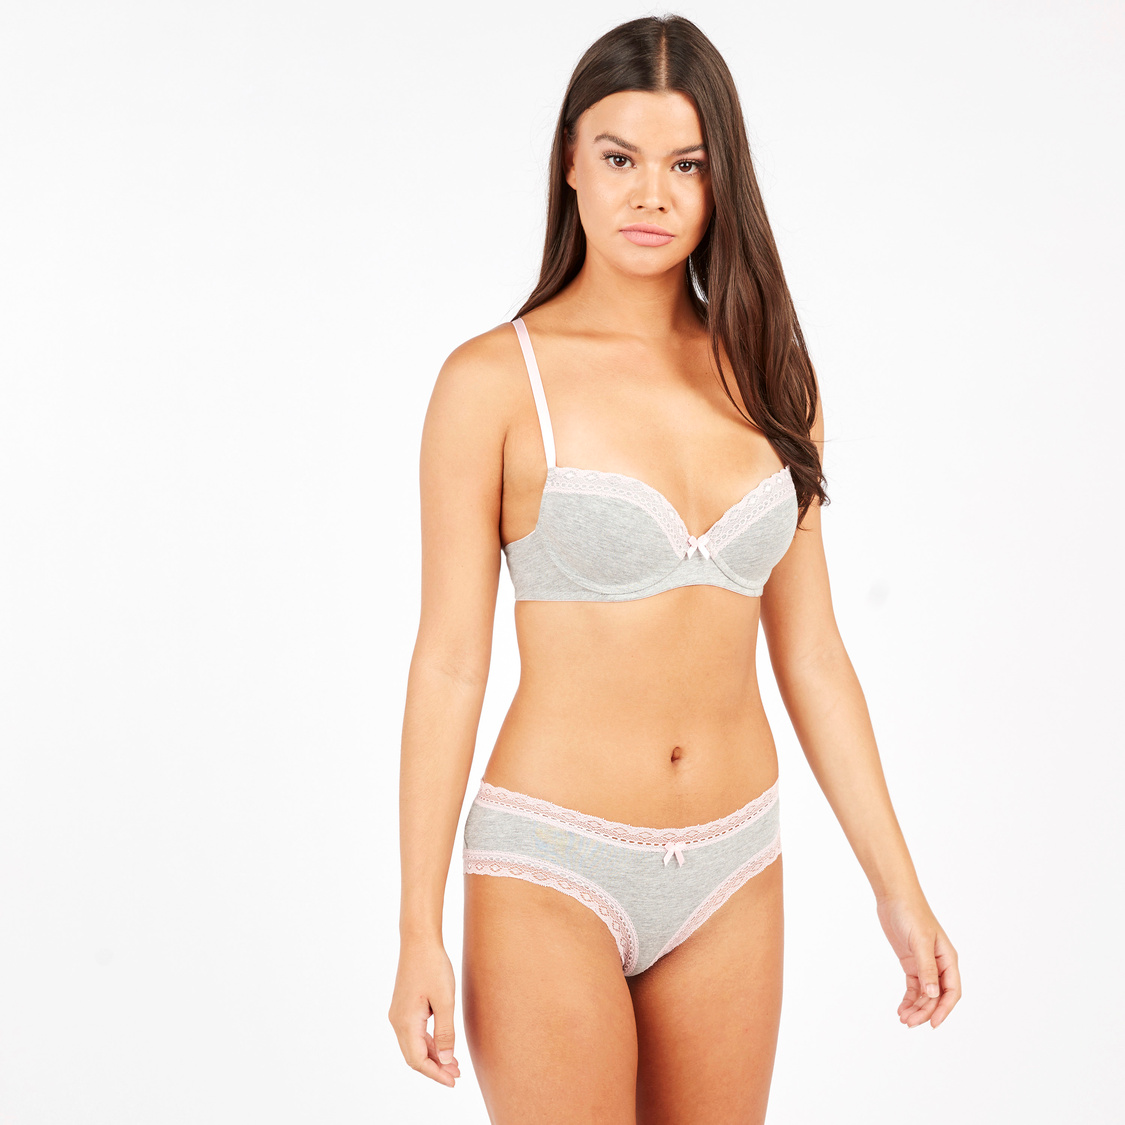 Textured Padded T-shirt Bra with Lace Detail